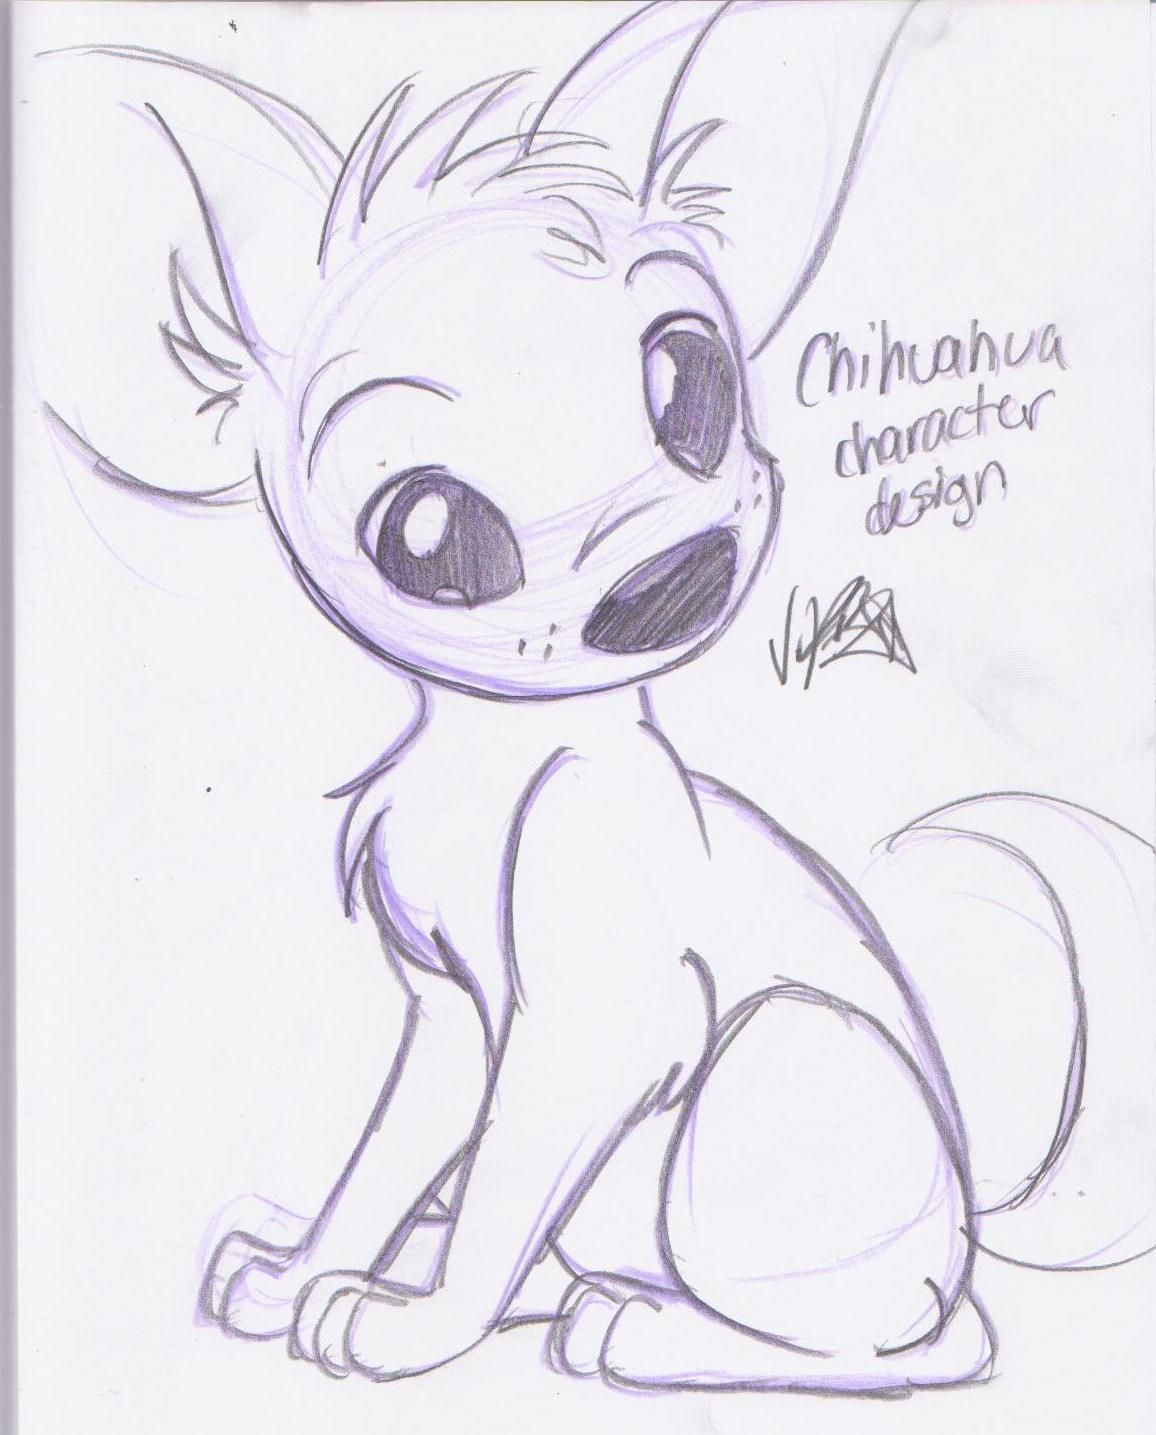 Chihuahua drawing chihuahuas pinterest drawings for Art sketches easy